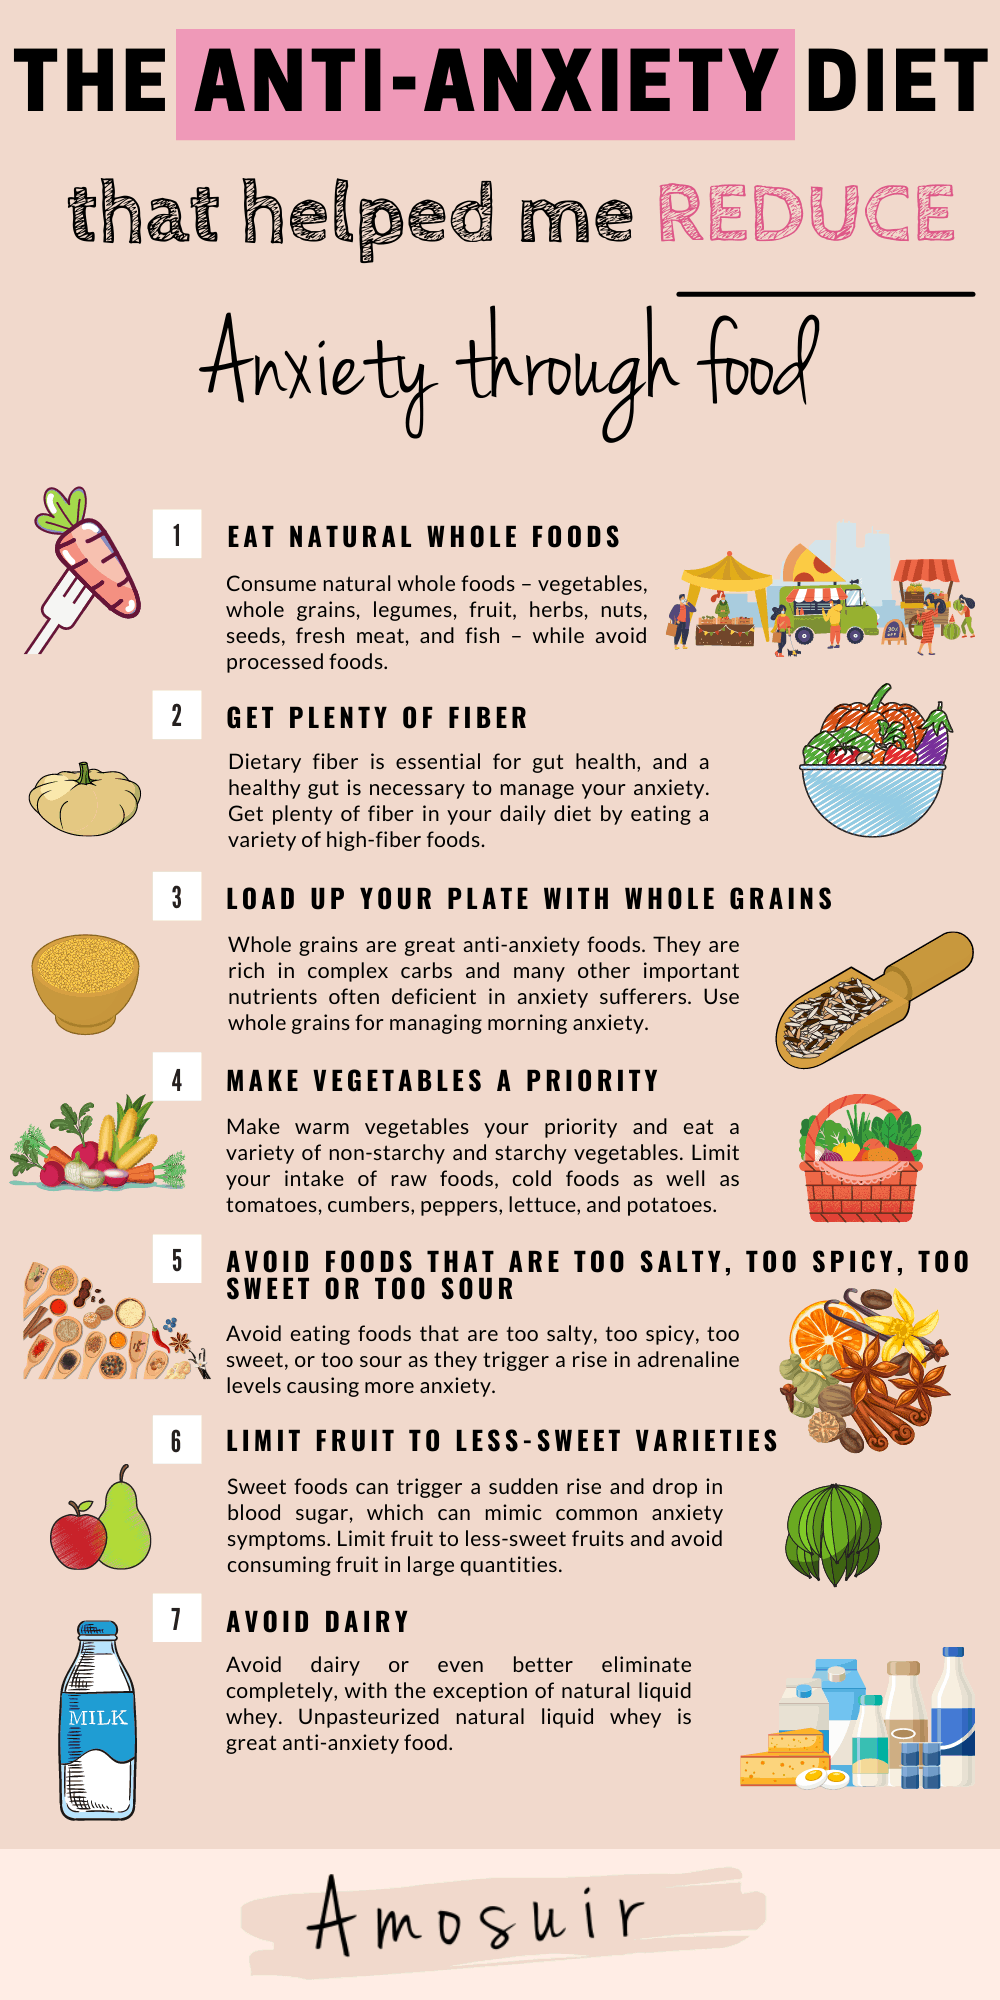 ANTI-ANXIETY DIET infographic